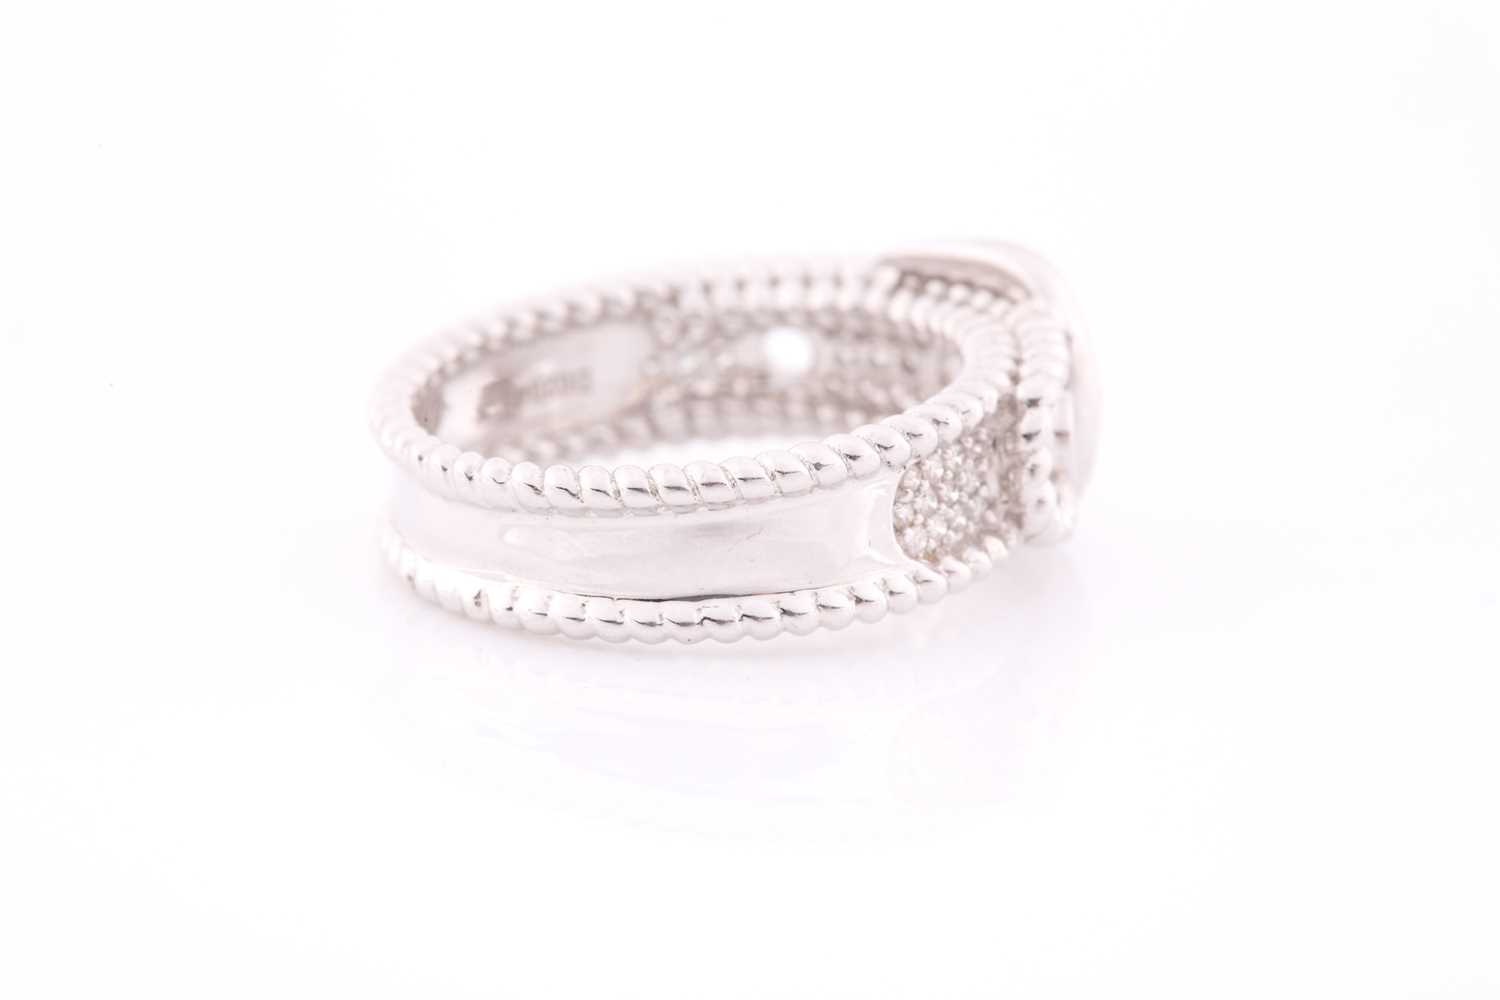 An 18ct white gold and diamond buckle ring, the mount pave-set with round brilliant-cut diamond - Image 5 of 5